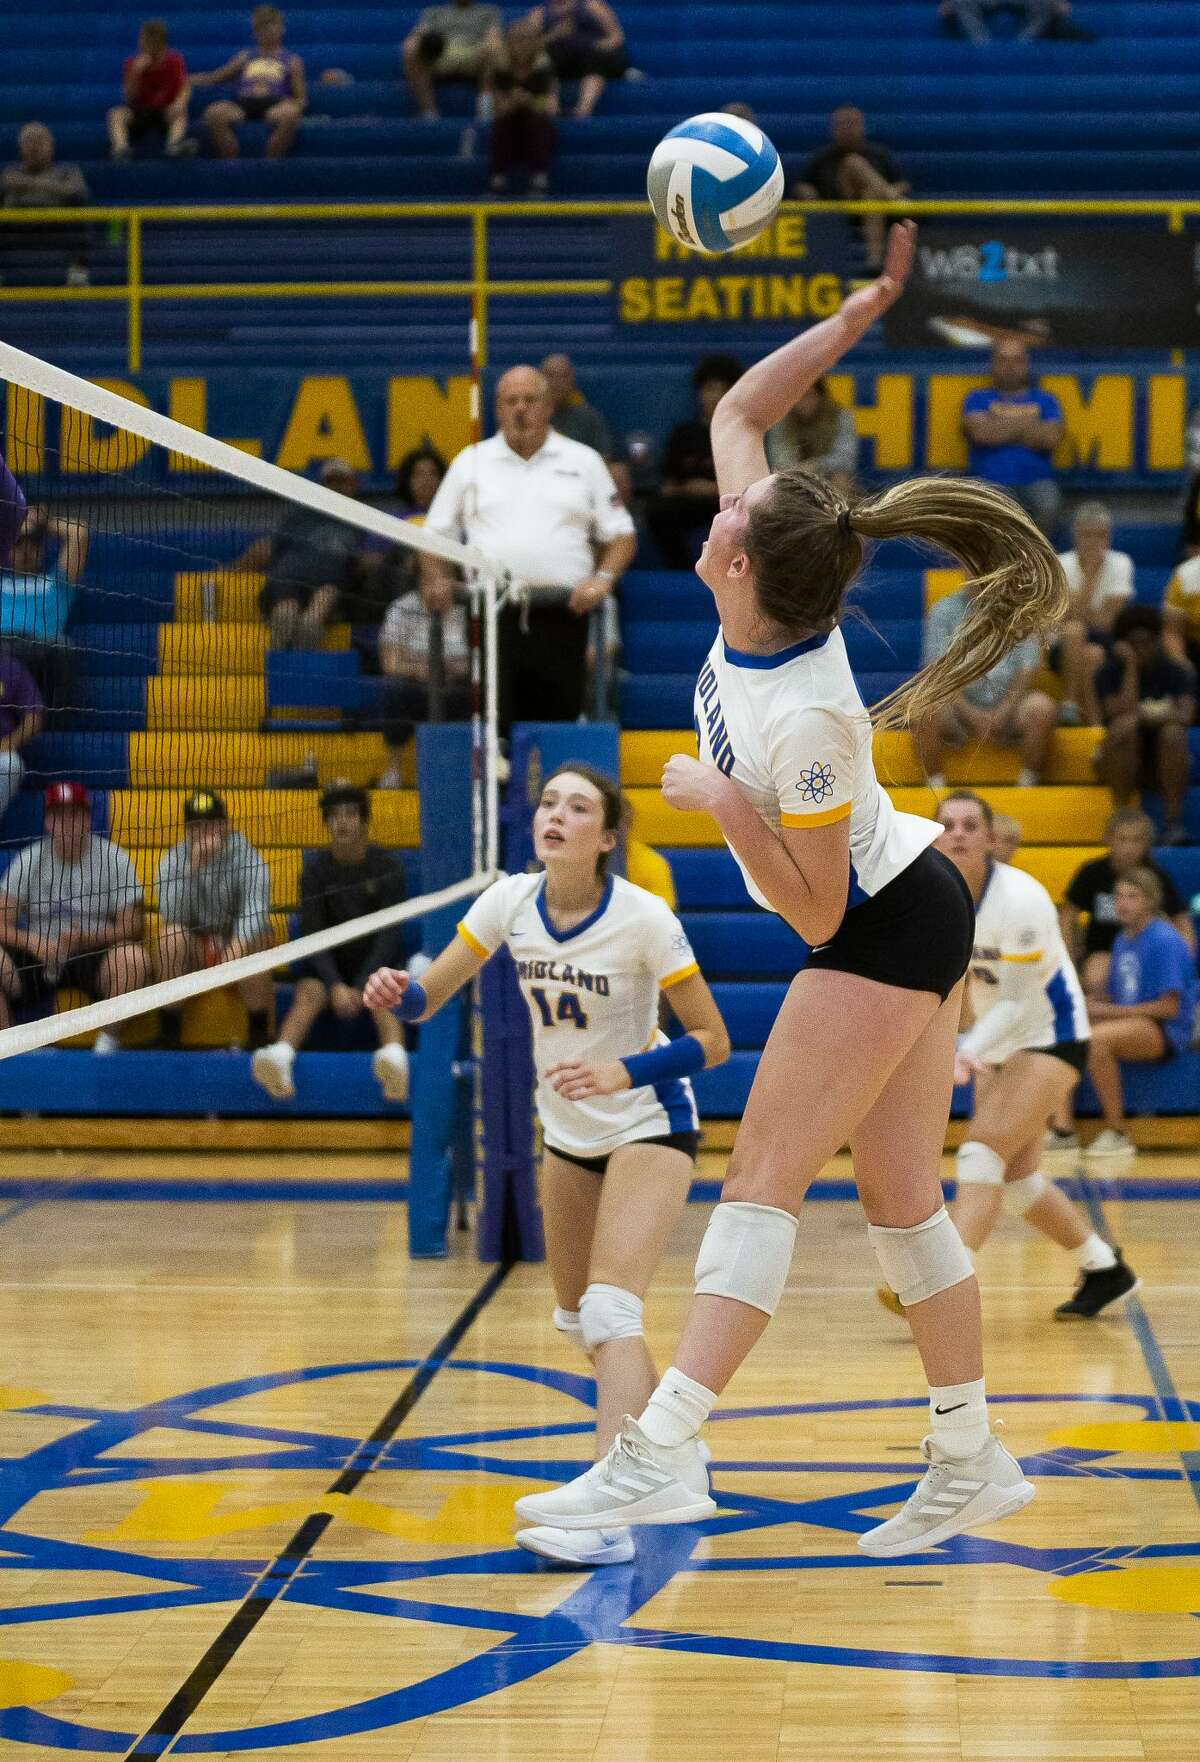 Midland's Emily Genau spikes the ball during the Chemics' match against Bay City Central Tuesday, Sept. 14, 2021 at Midland High School. (Doug Julian/for the Daily News)